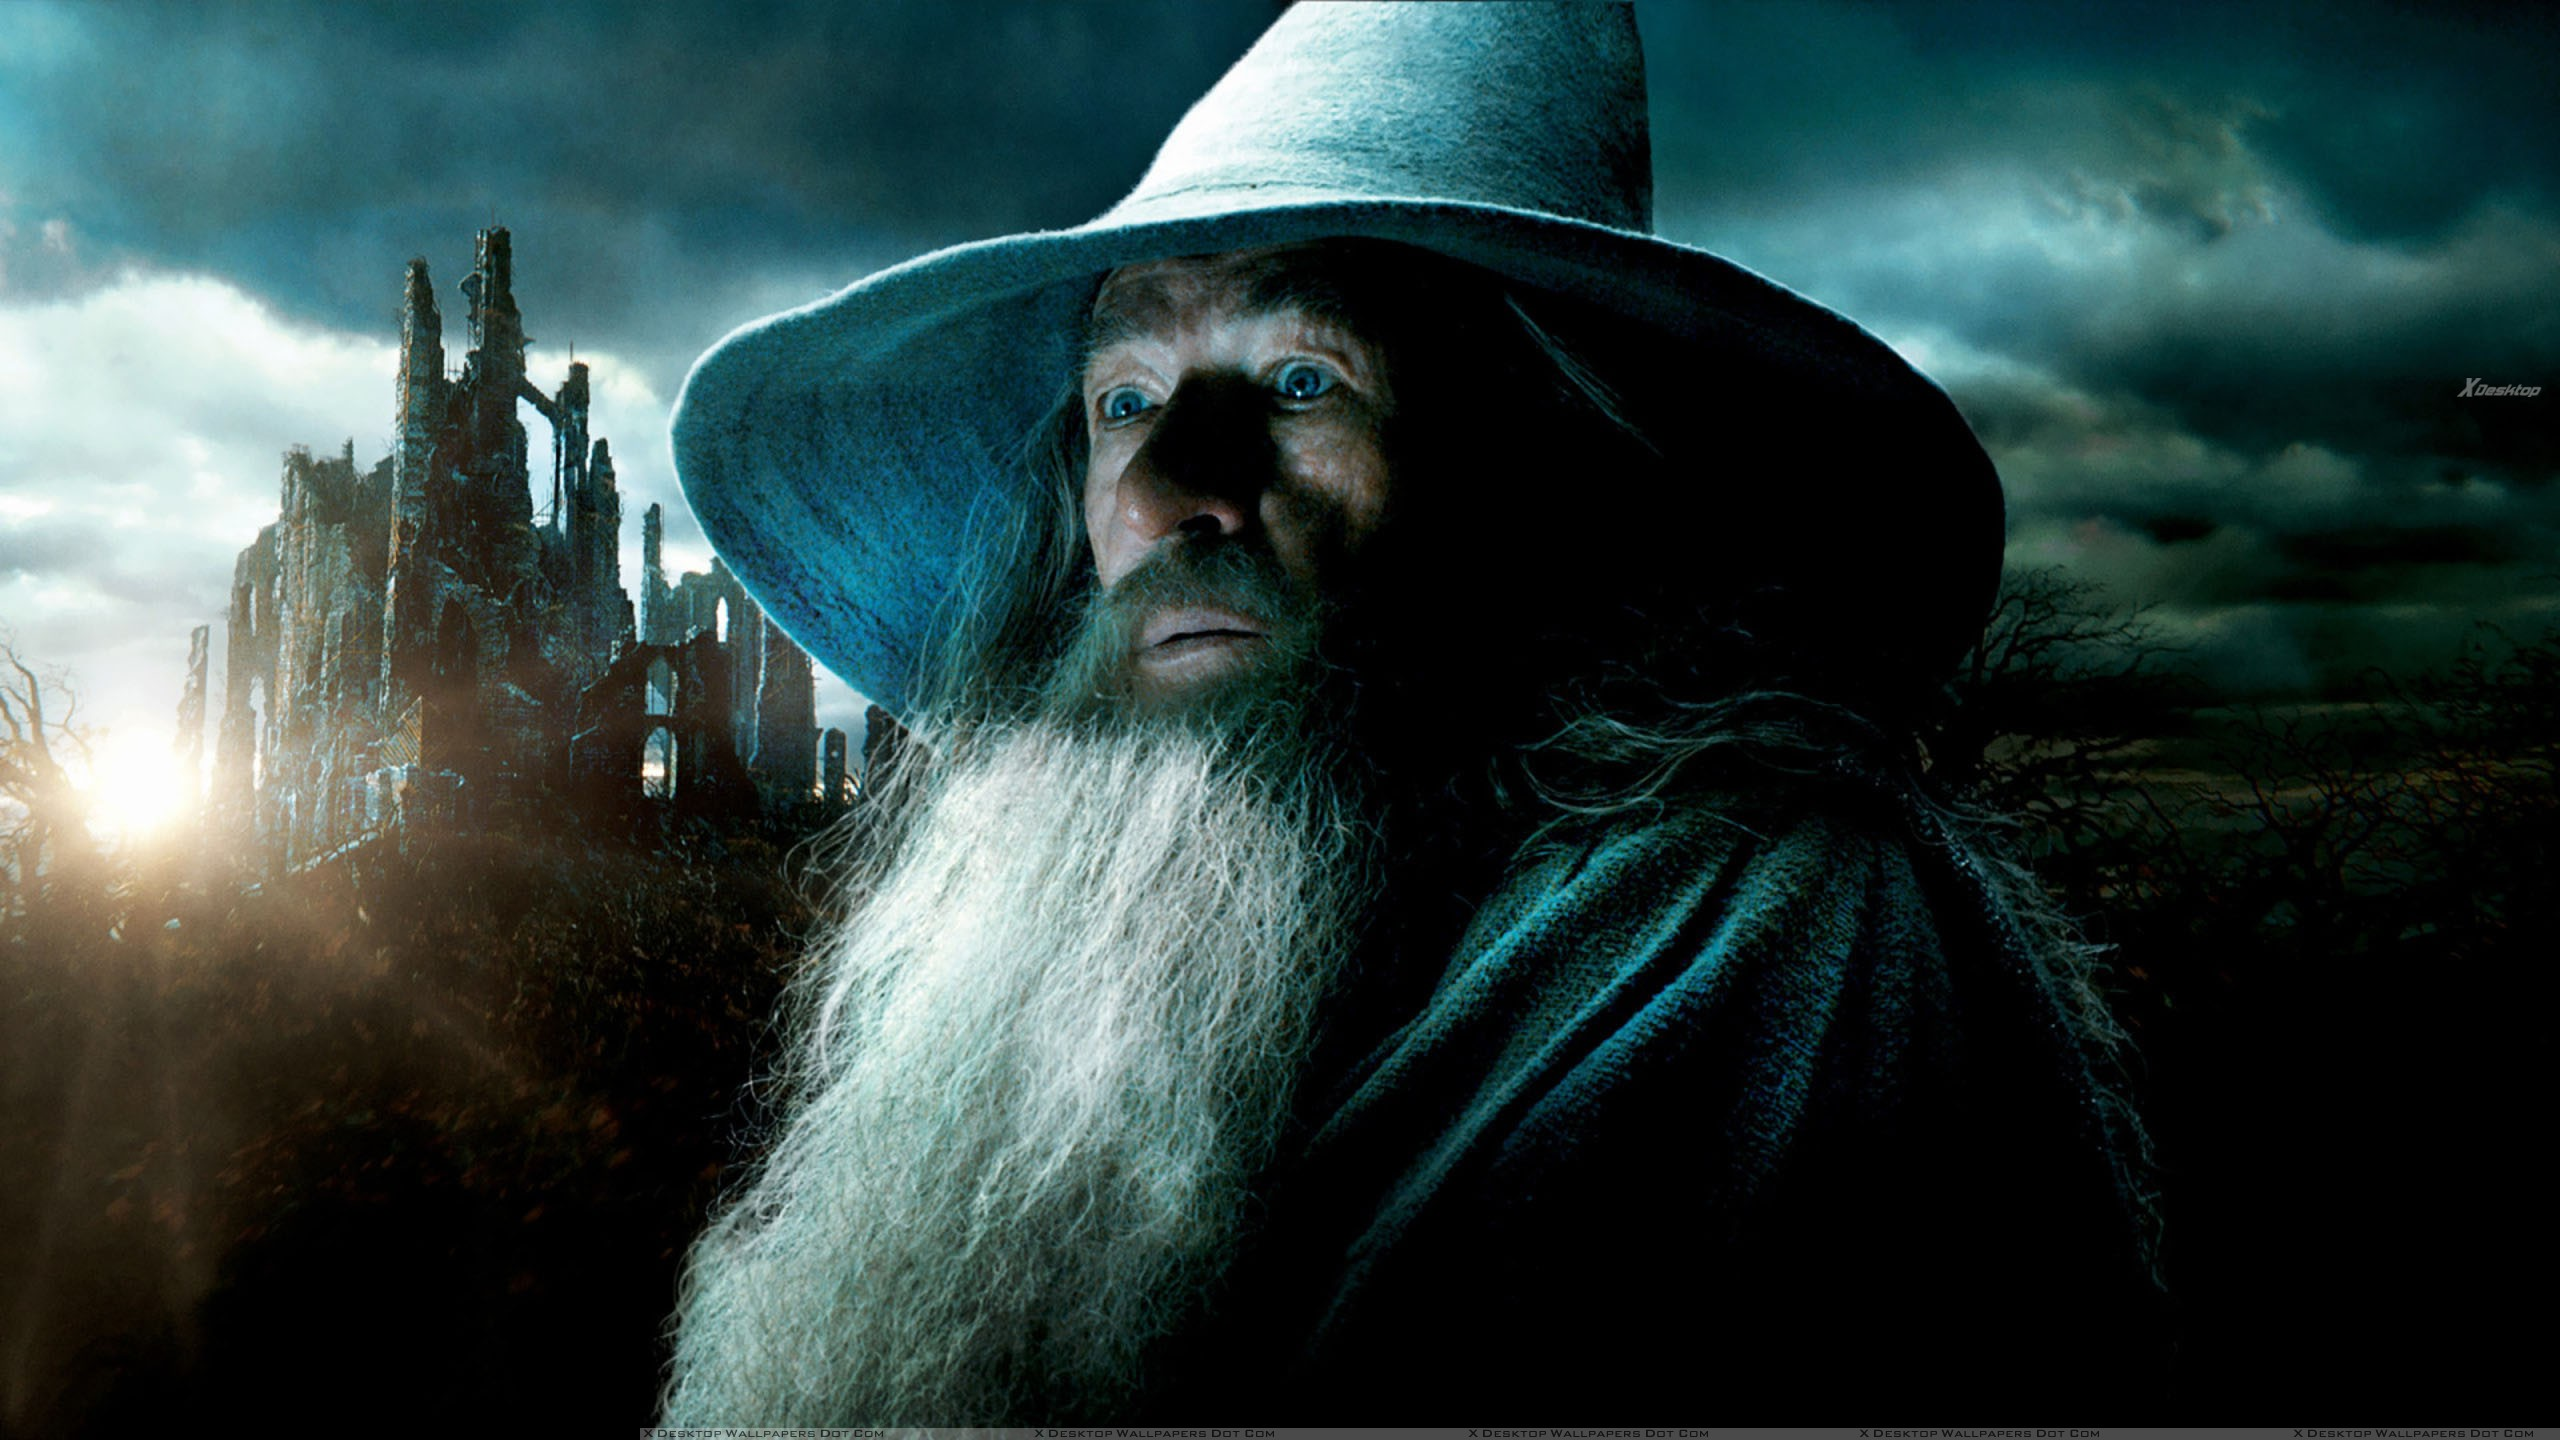 ian mckellen with long beard in the hobbit – the desolation of smaug